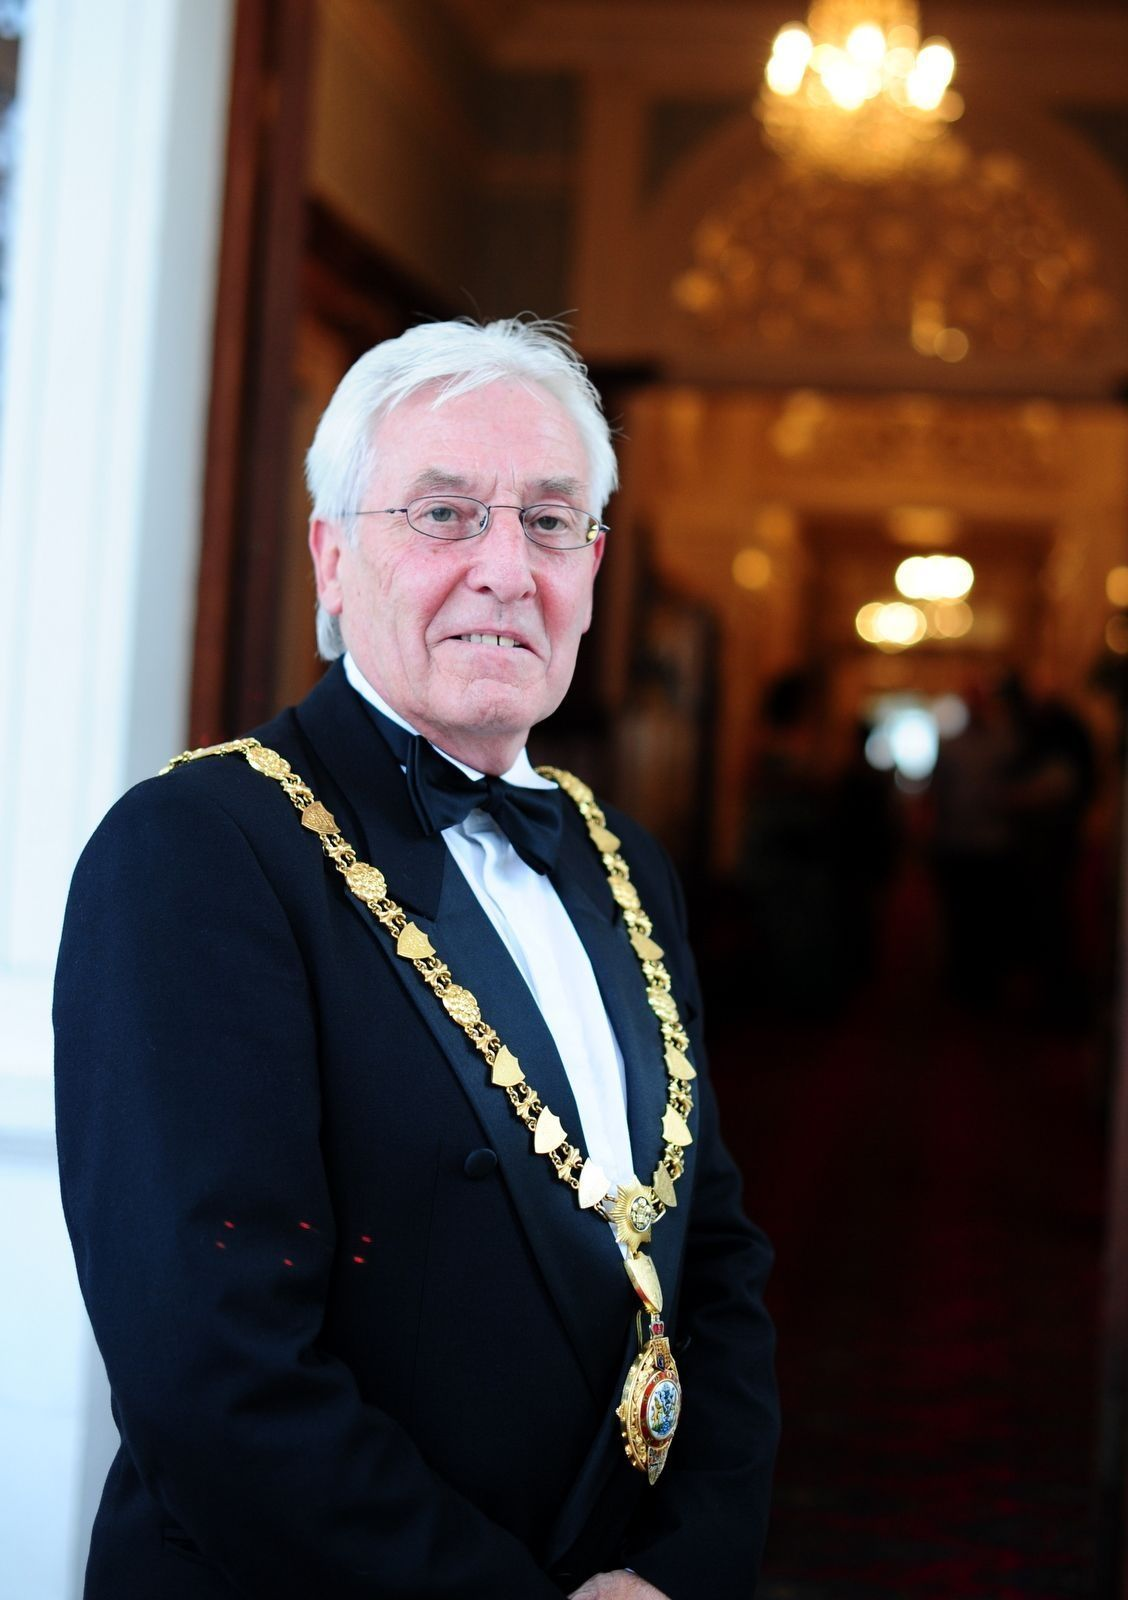 Geoffrey Evans (pictured during one of his terms as mayor) has been made an MBE in the New Year's Honours